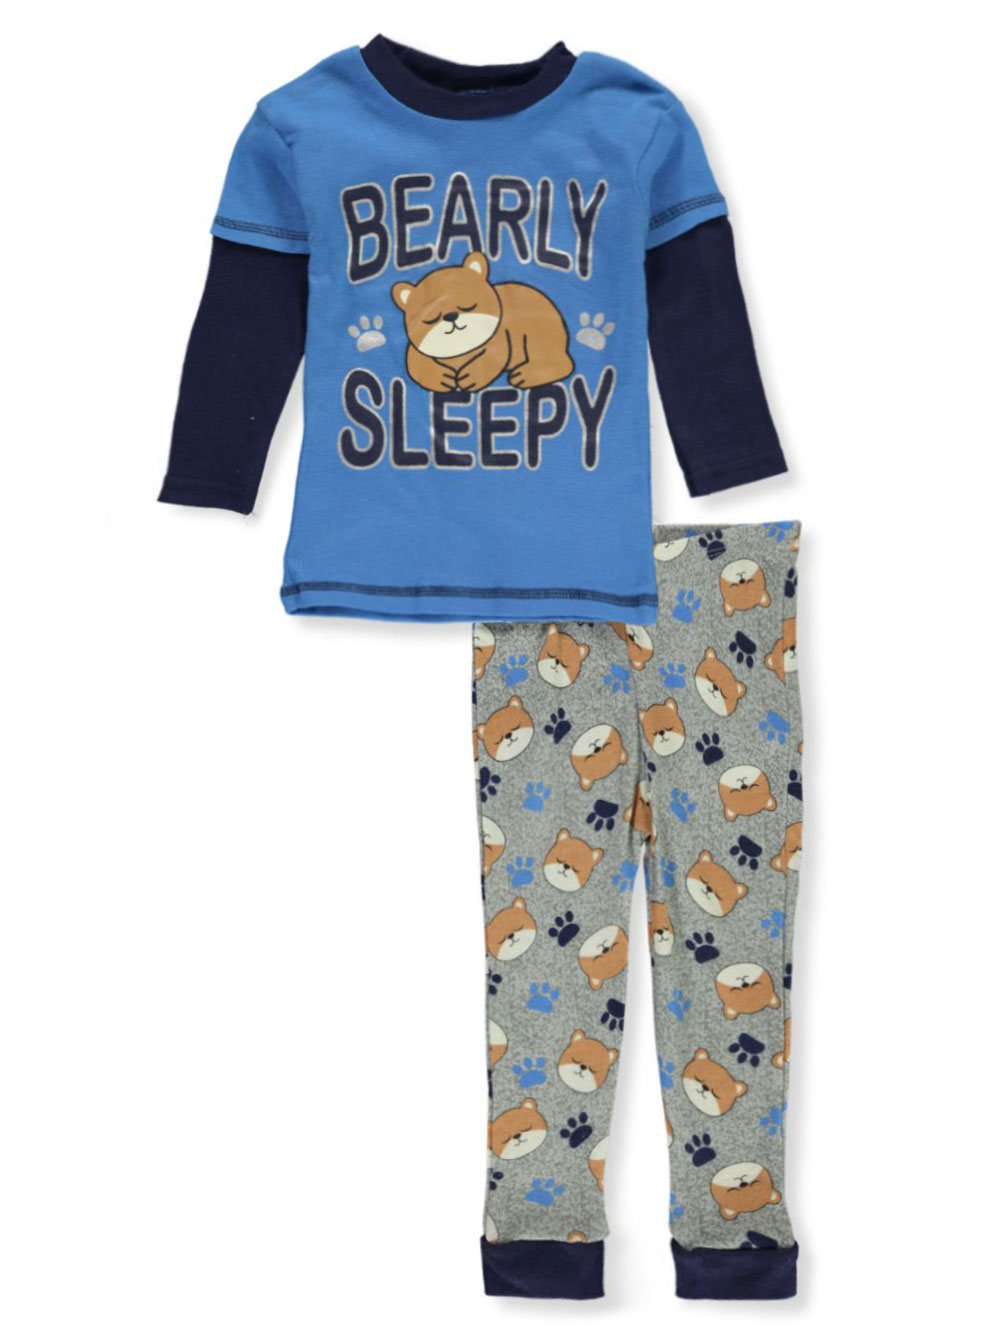 Boys Navy/Multi Pajamas